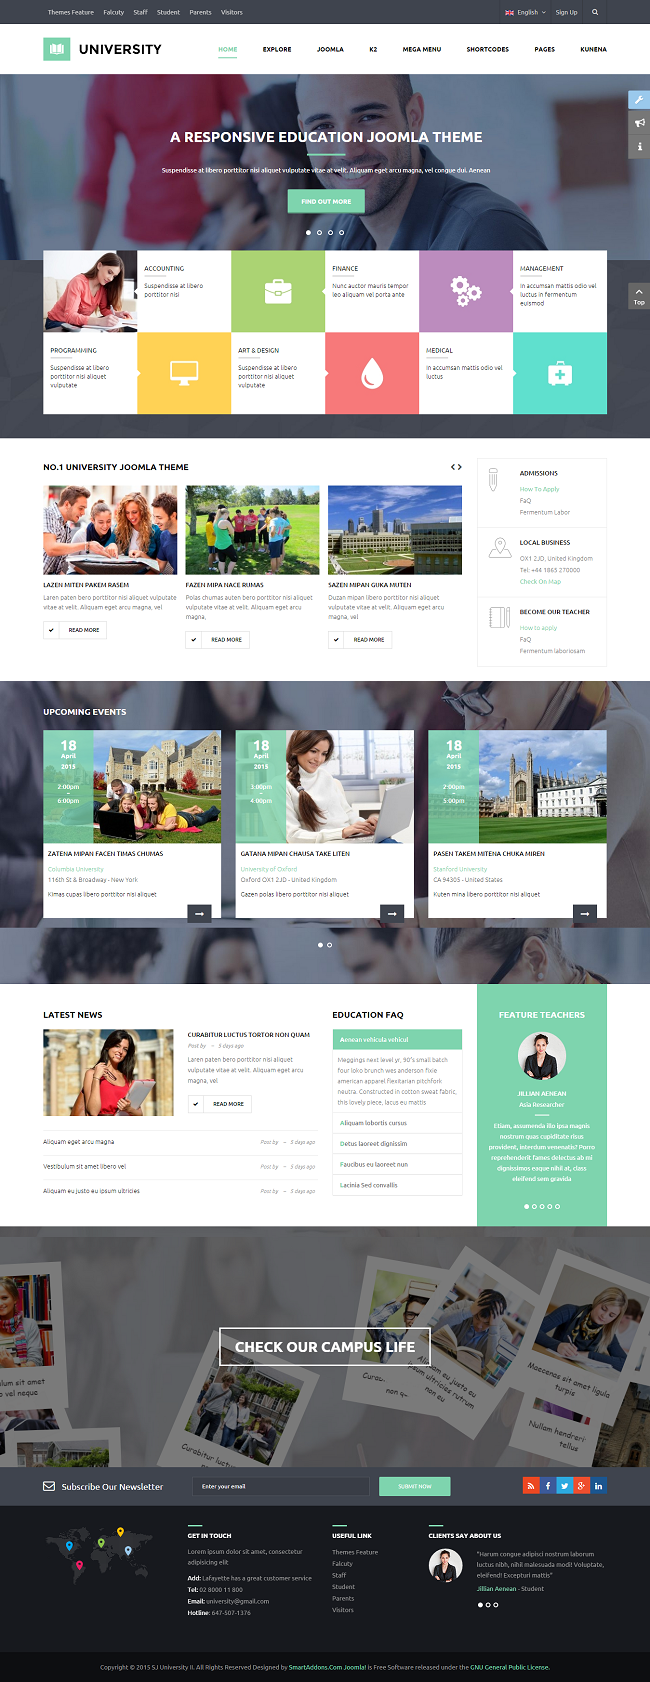 SJ University II - Responsive Joomla Educational Template - 06_cyan.png